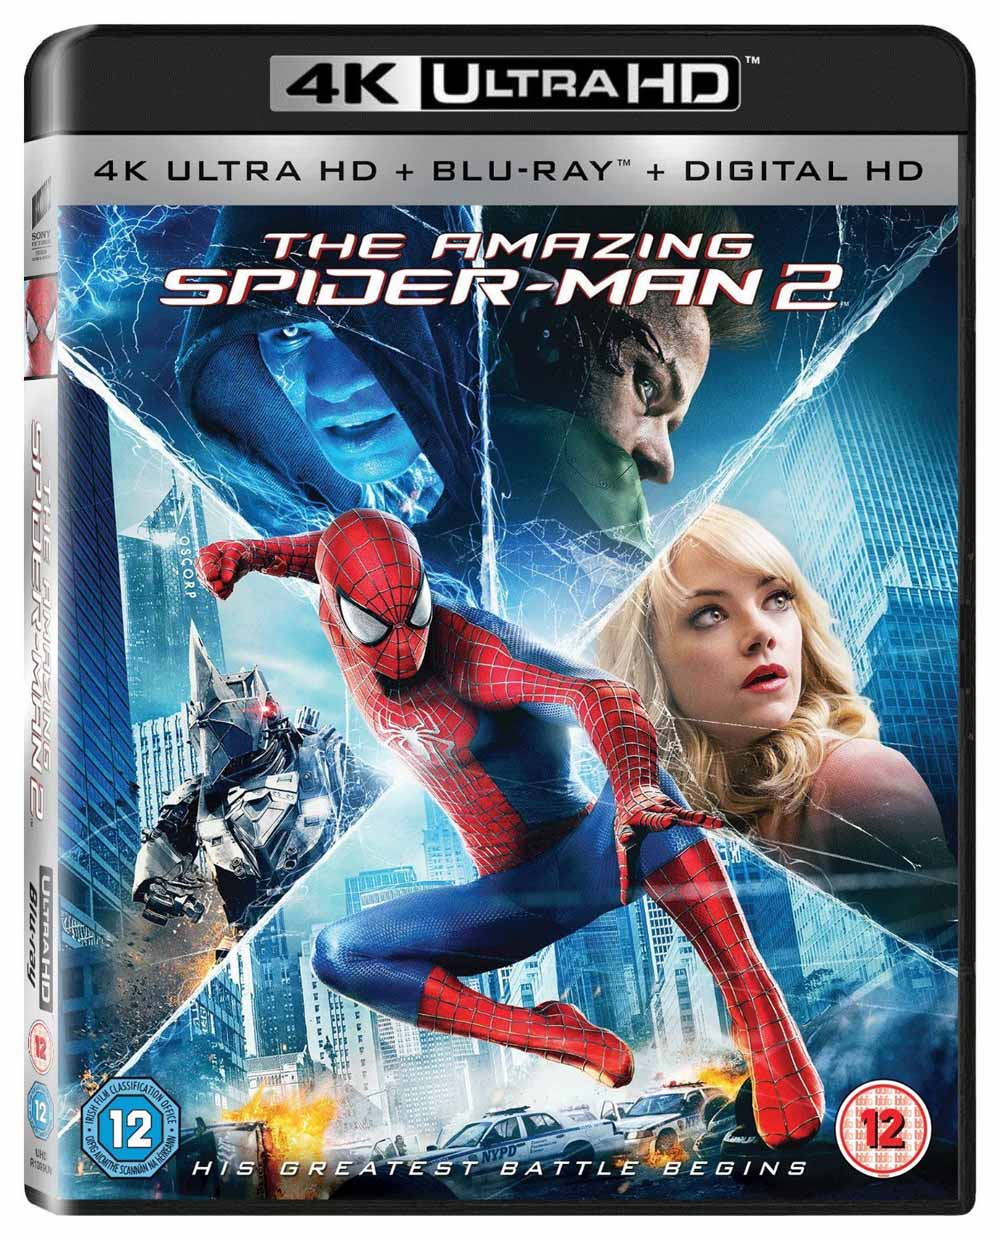 Amazing Spider-man 2 (The) - Il potere di Electro (2014) (Marvel) (4K)